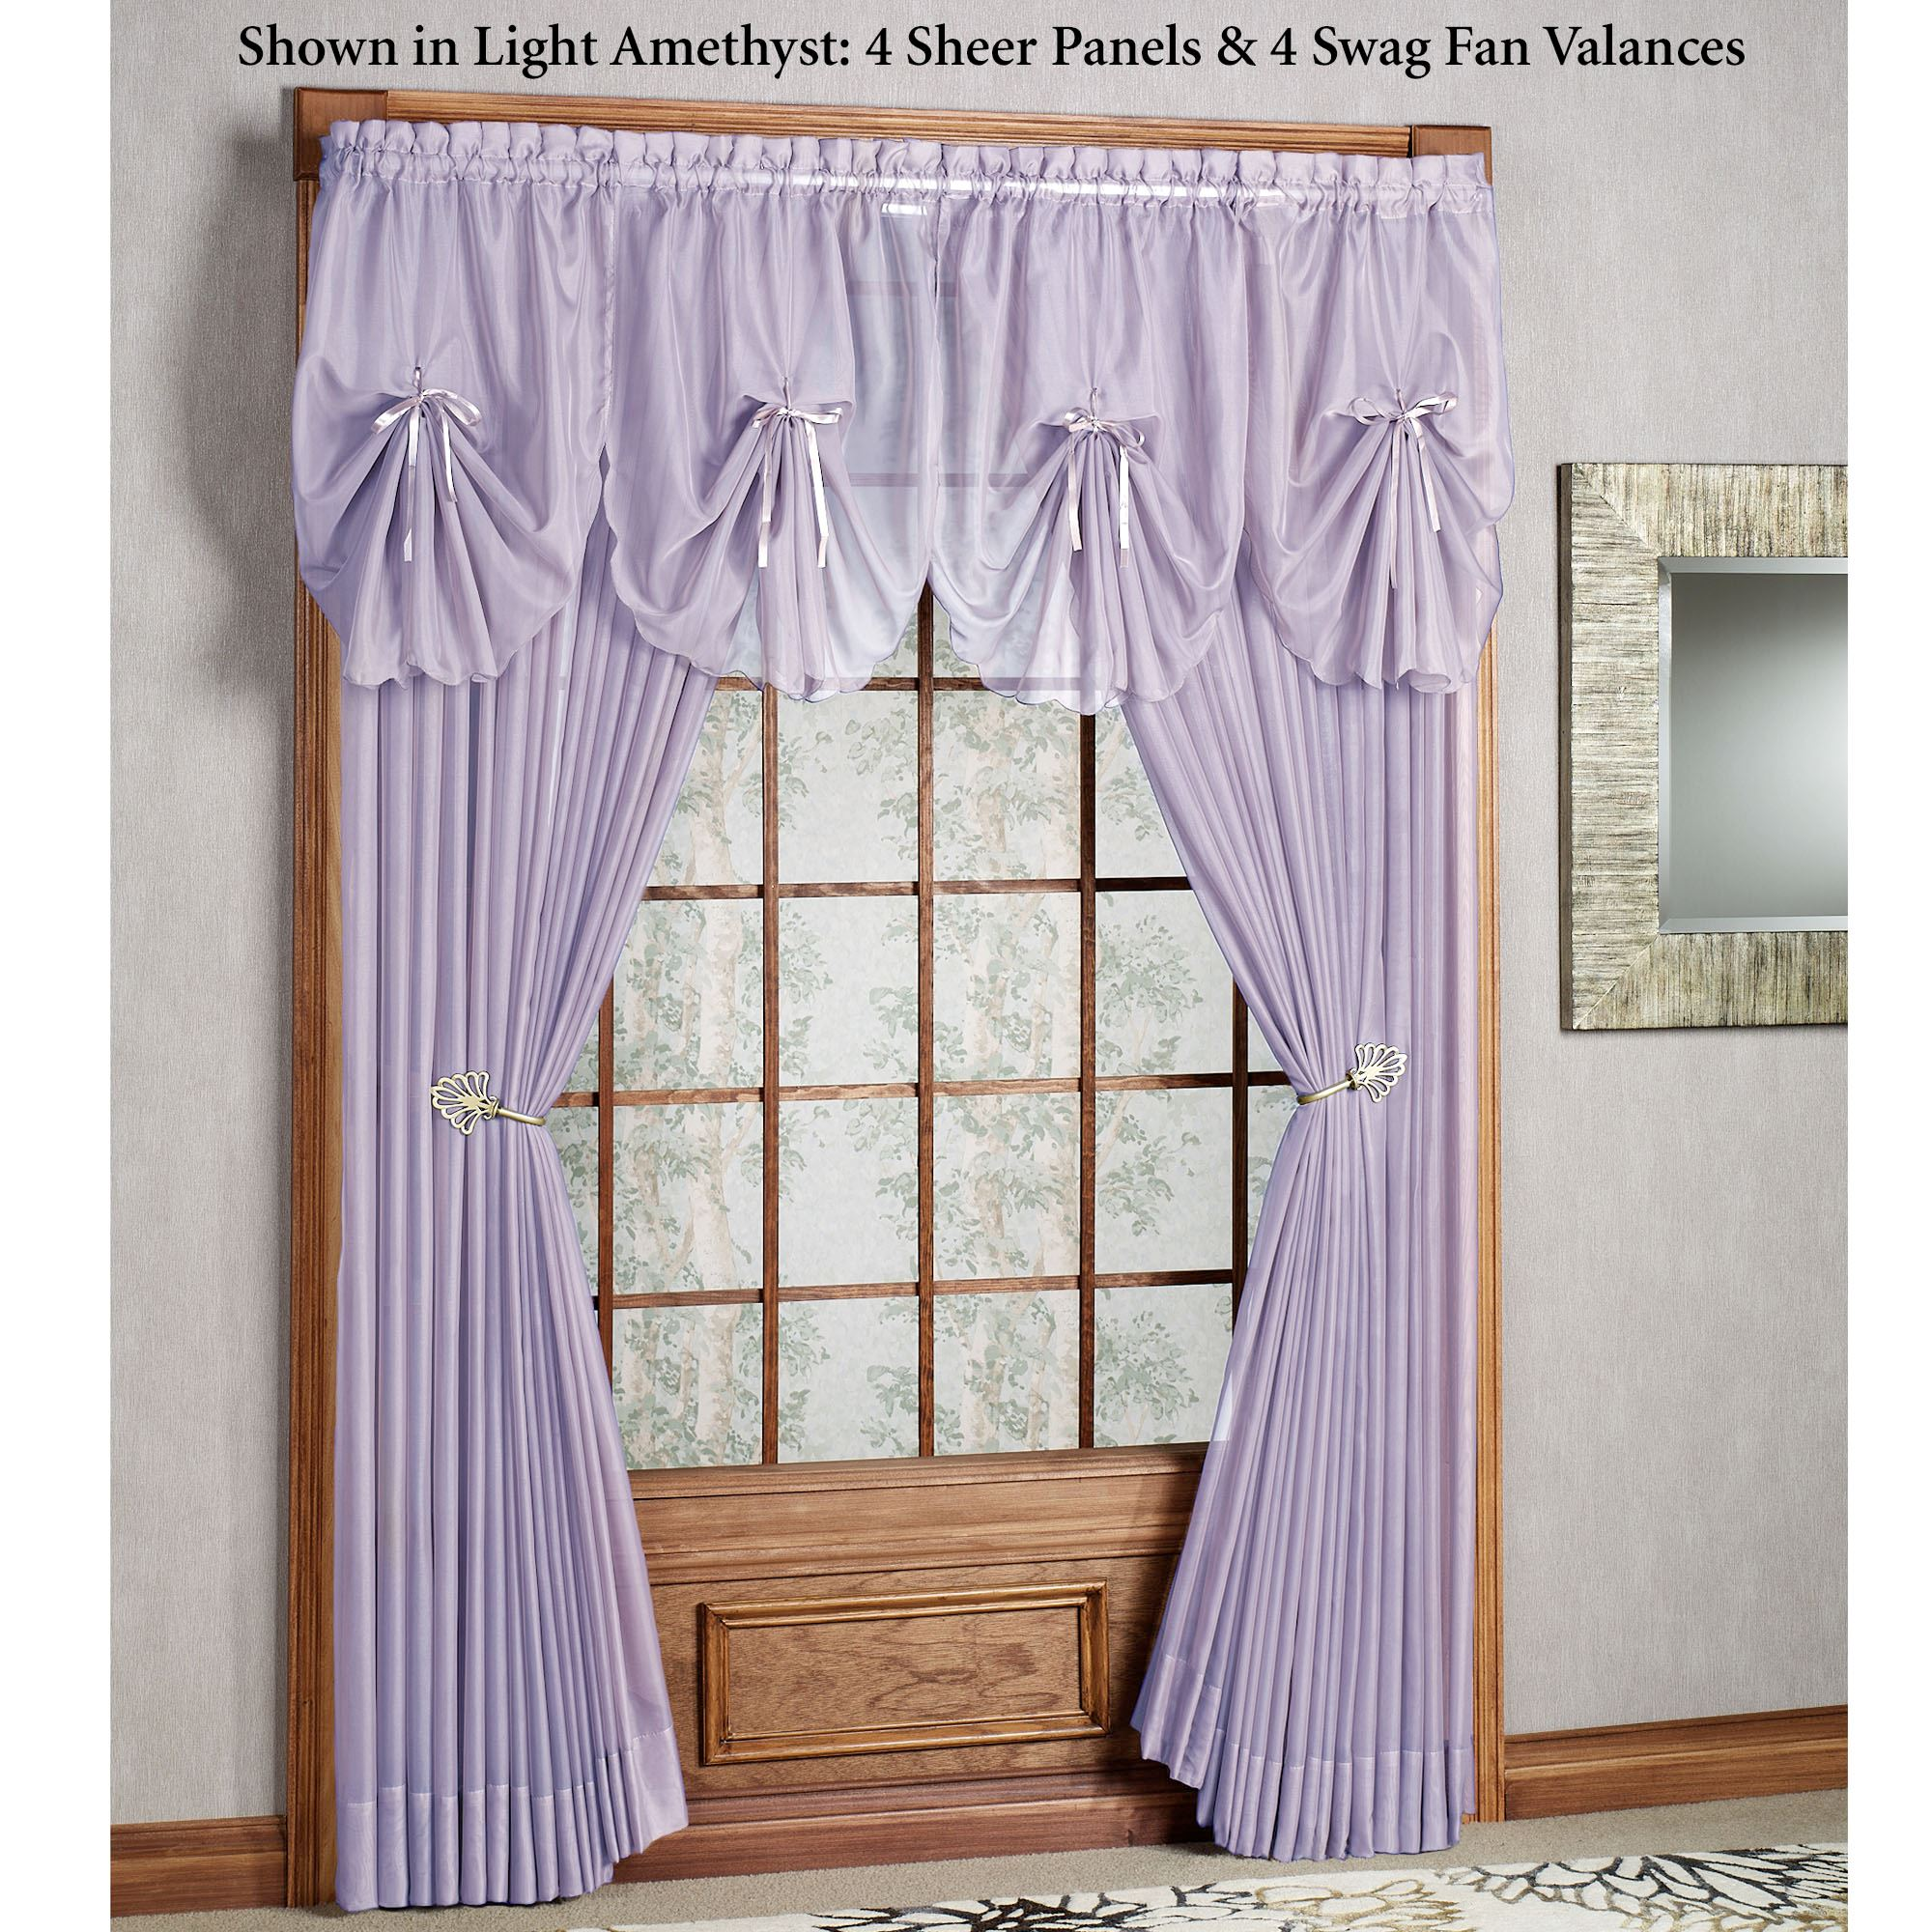 Lavender Sheer Curtains Emelia Sheer Window Treatments